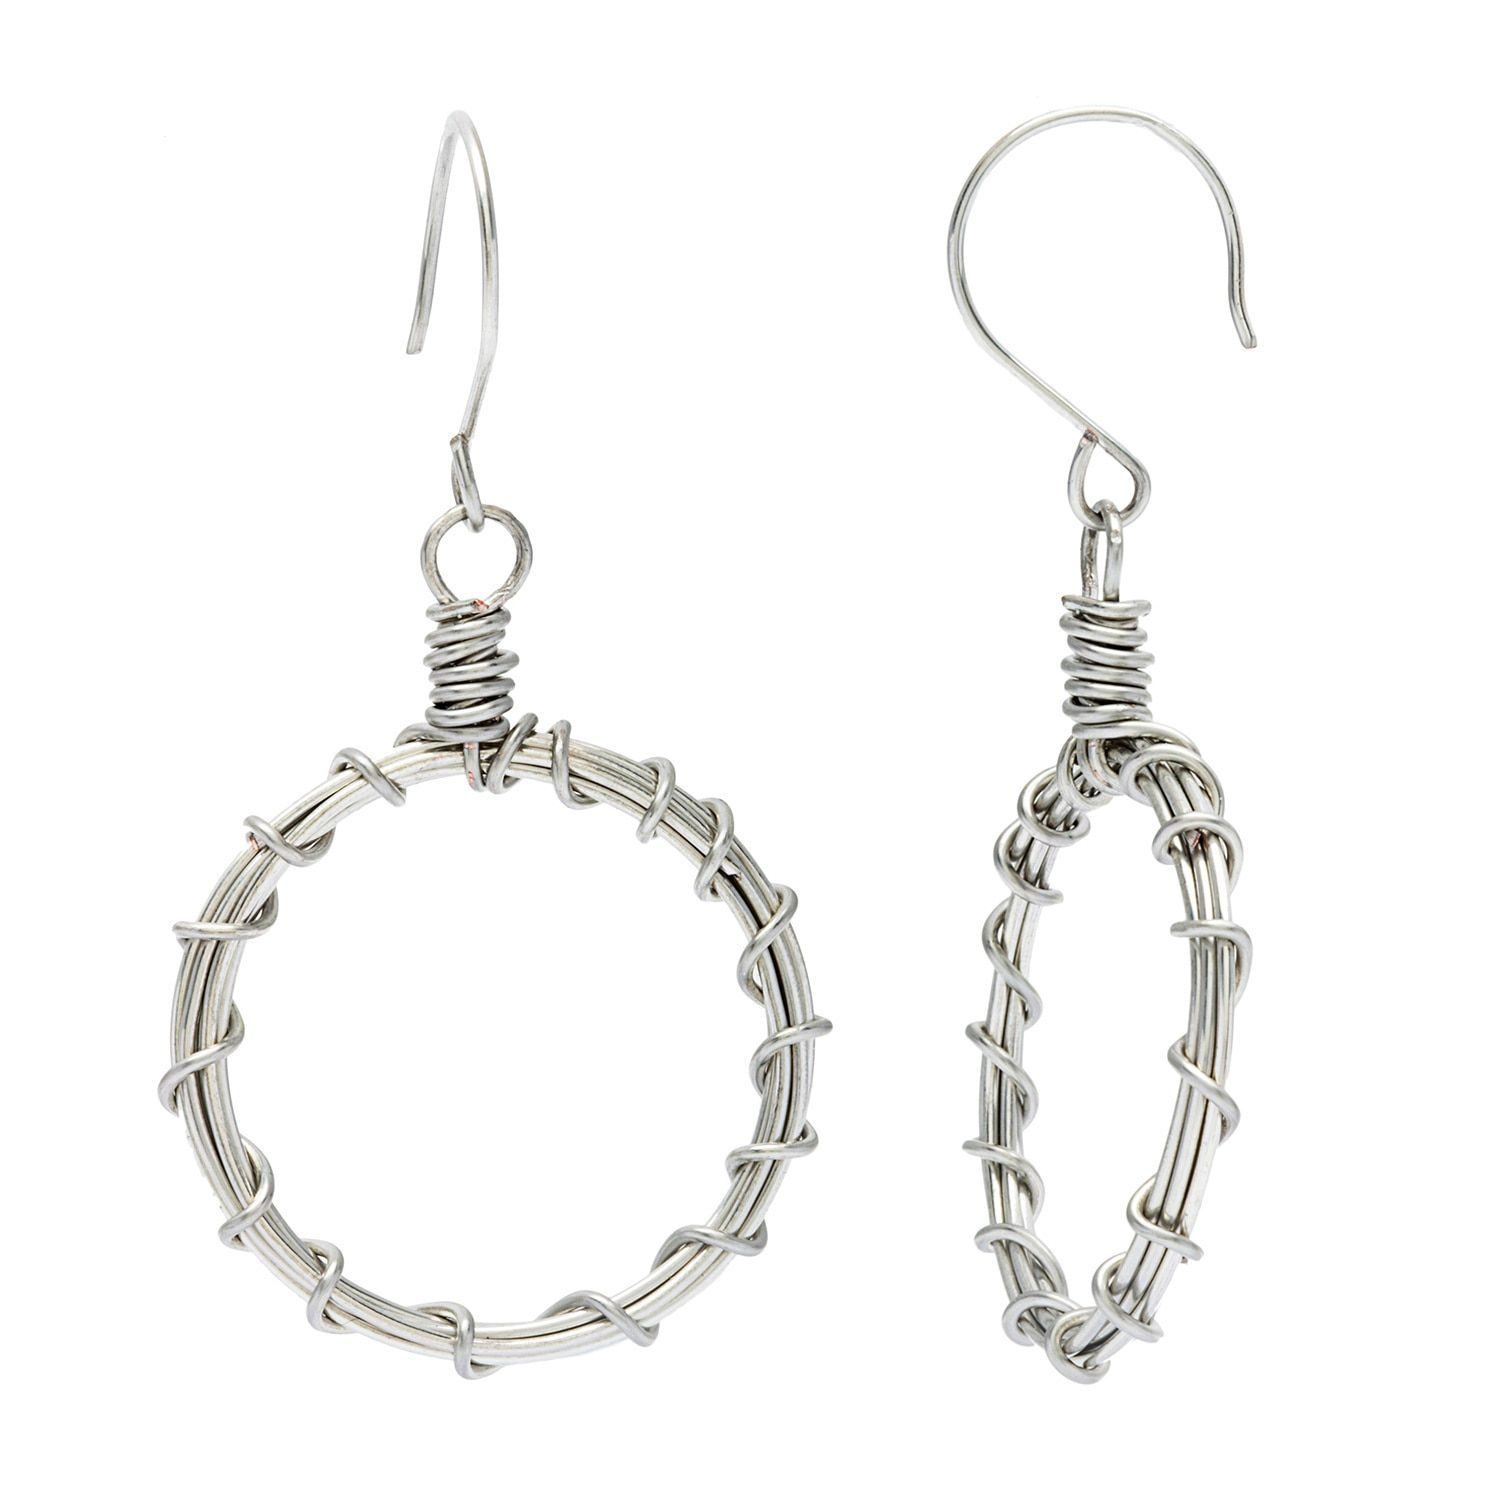 Karla Patin Silvertone Twisted Wire-wrapped Hoop Earrings | Earrings ...